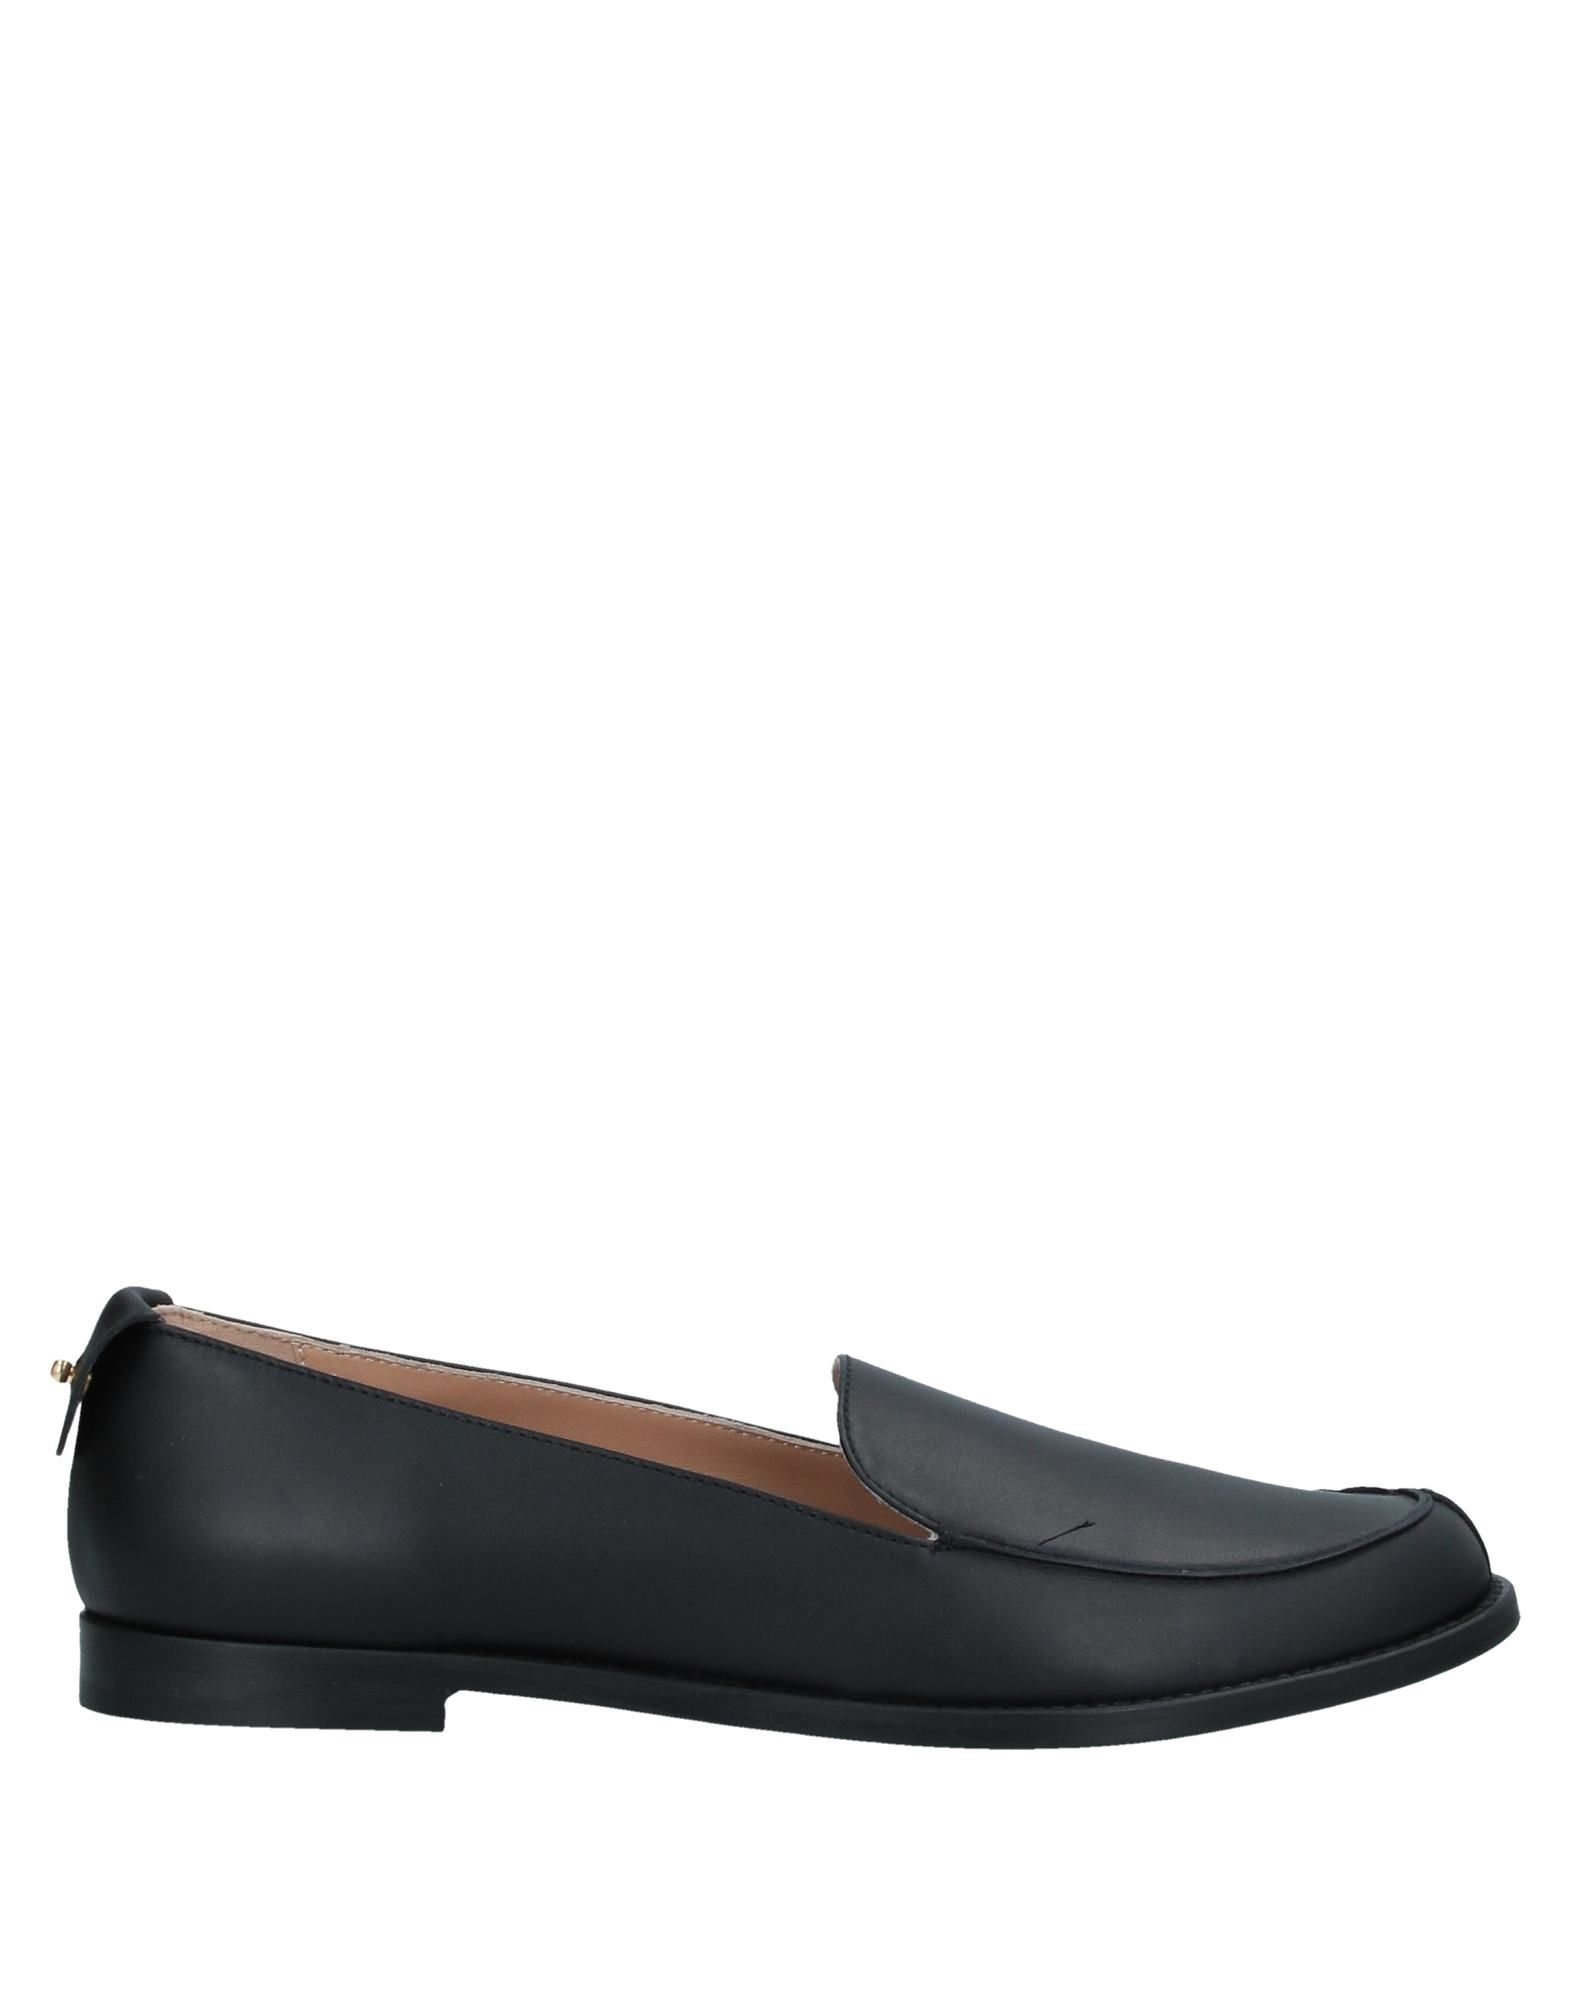 PHILOSOPHY di LORENZO SERAFINI Loafers. leather, contrasting applications, solid color, round toeline, flat, leather lining, leather sole, contains non-textile parts of animal origin. Soft Leather